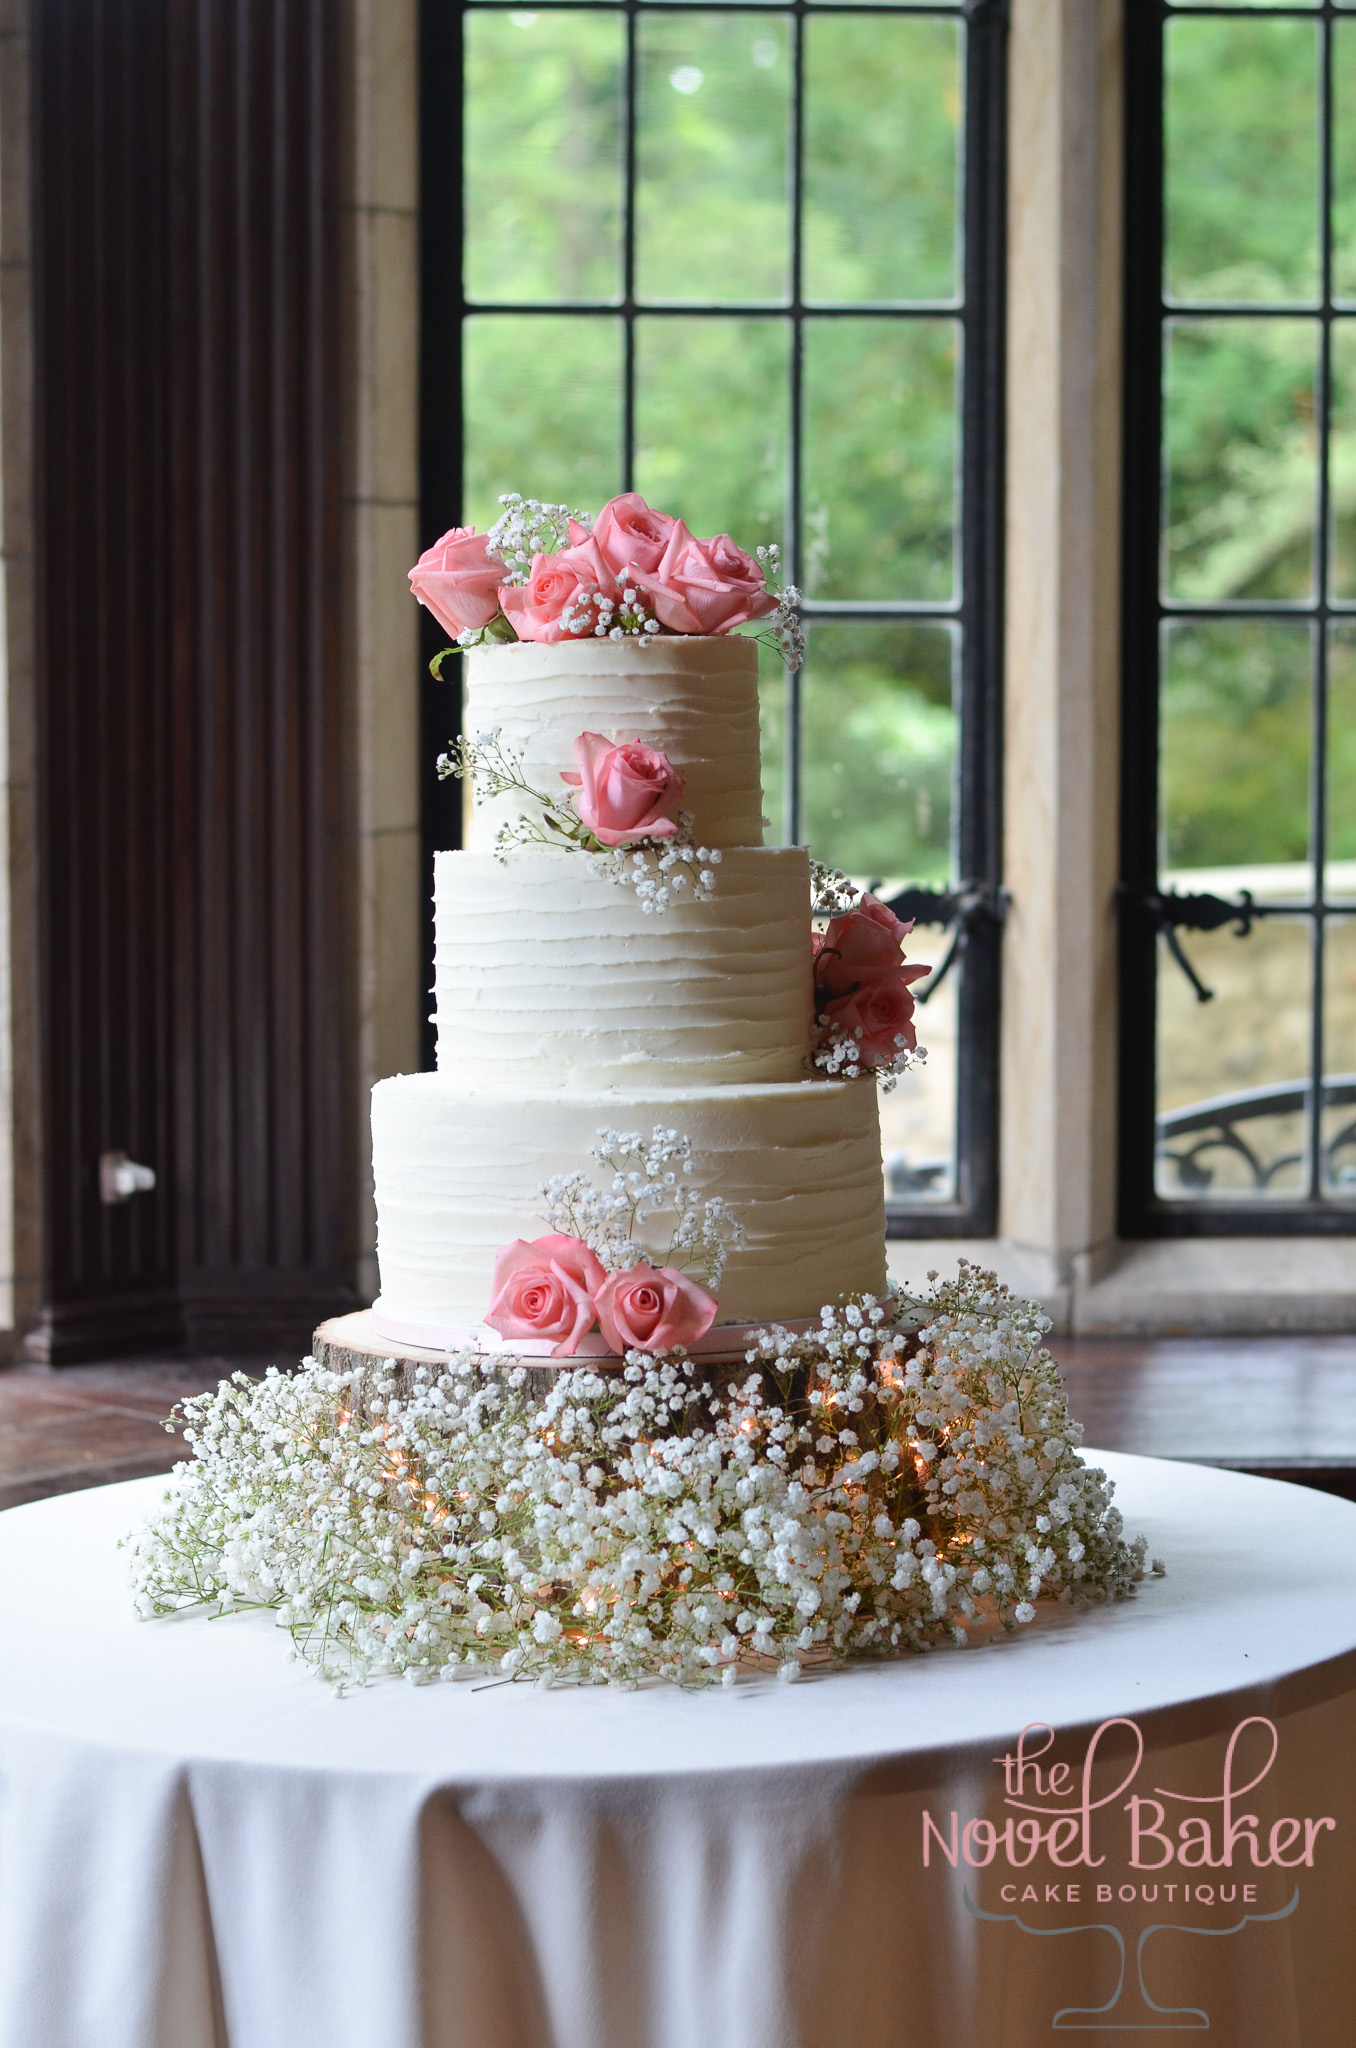 Three-tier rustic buttercream wedding cake with pink roses and baby's breath. The base is a natural tree trunk surrounded with baby's breath sparkling with fairy lights.